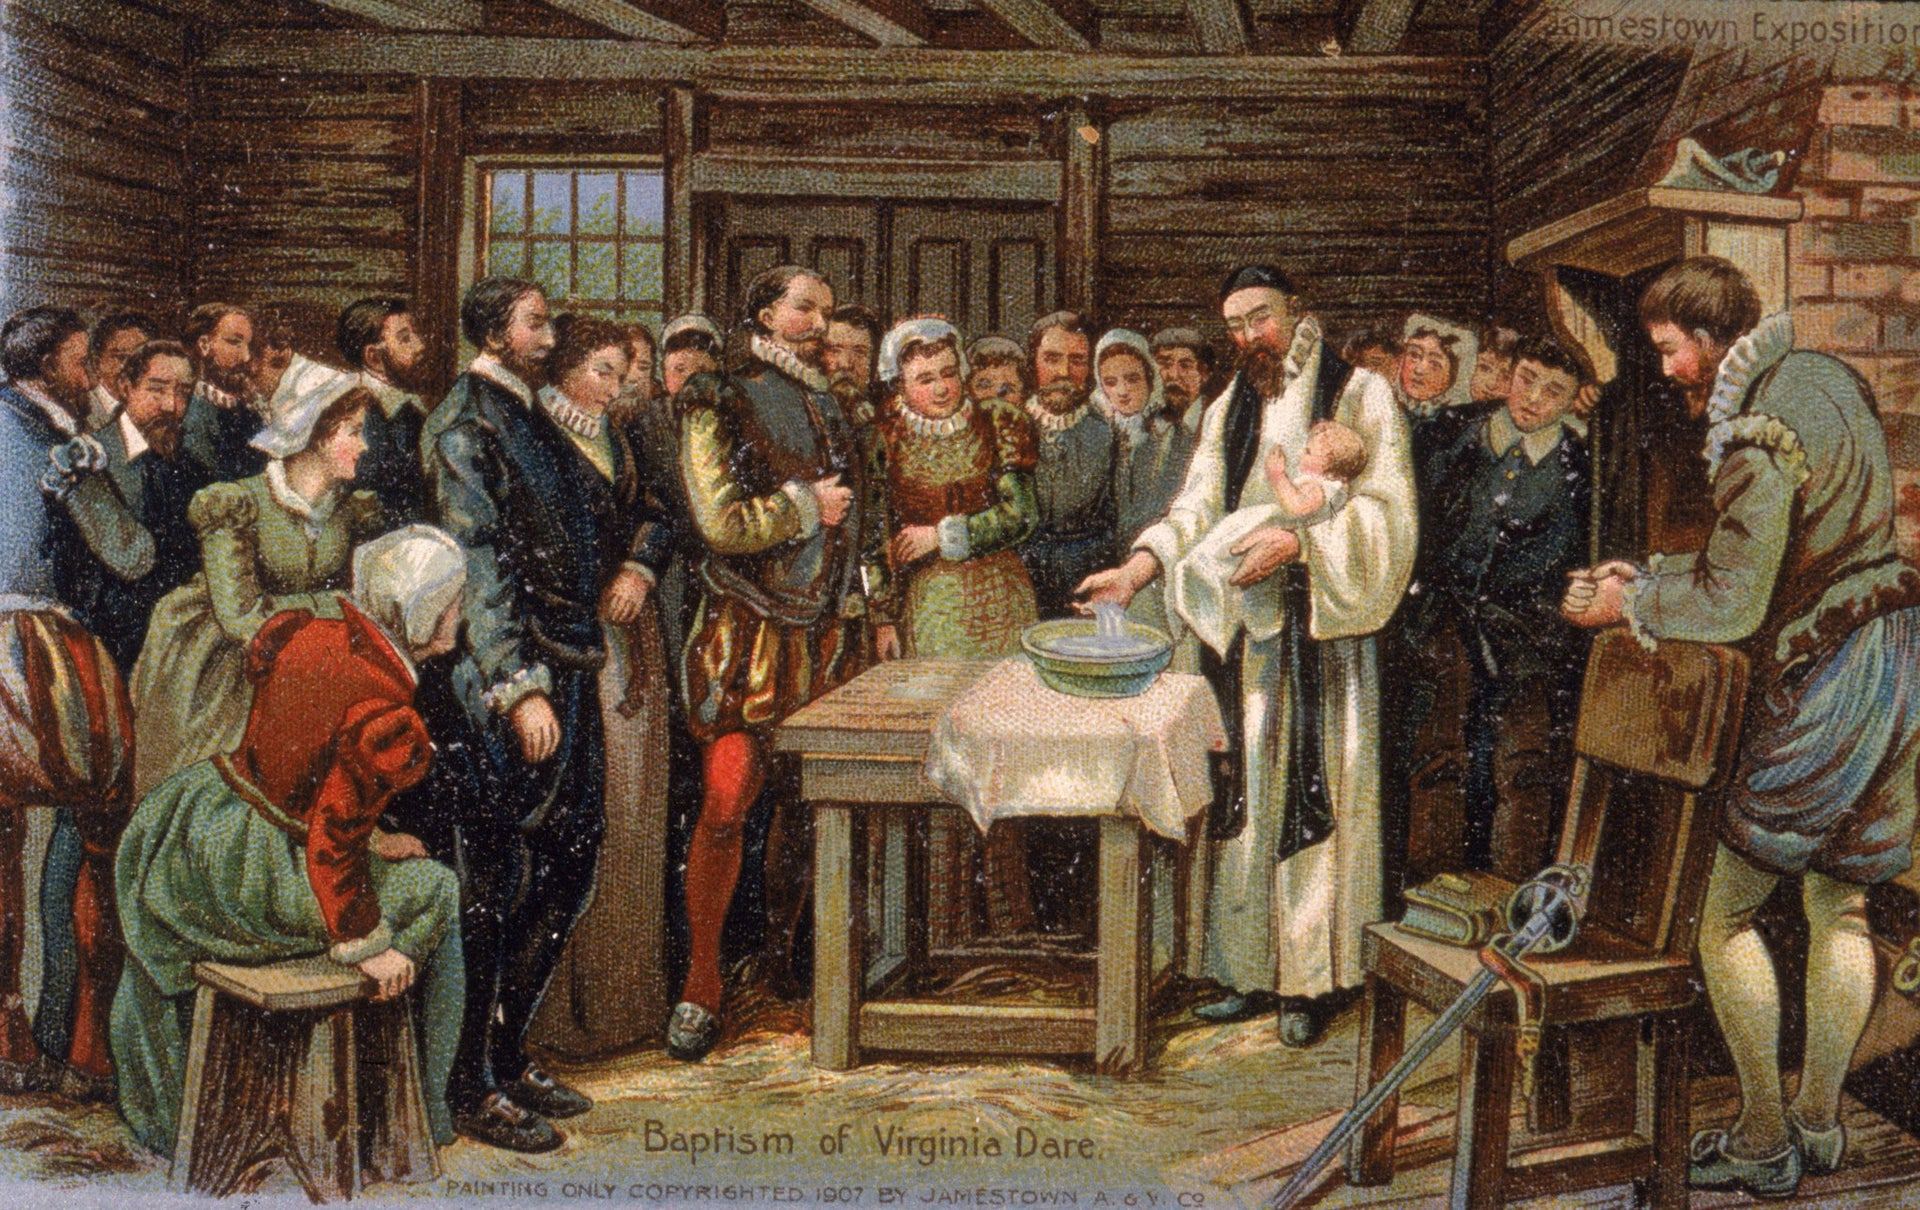 Illustration depicting the baptism of Virginia Dare, the first English child born in the Roanoke colony.